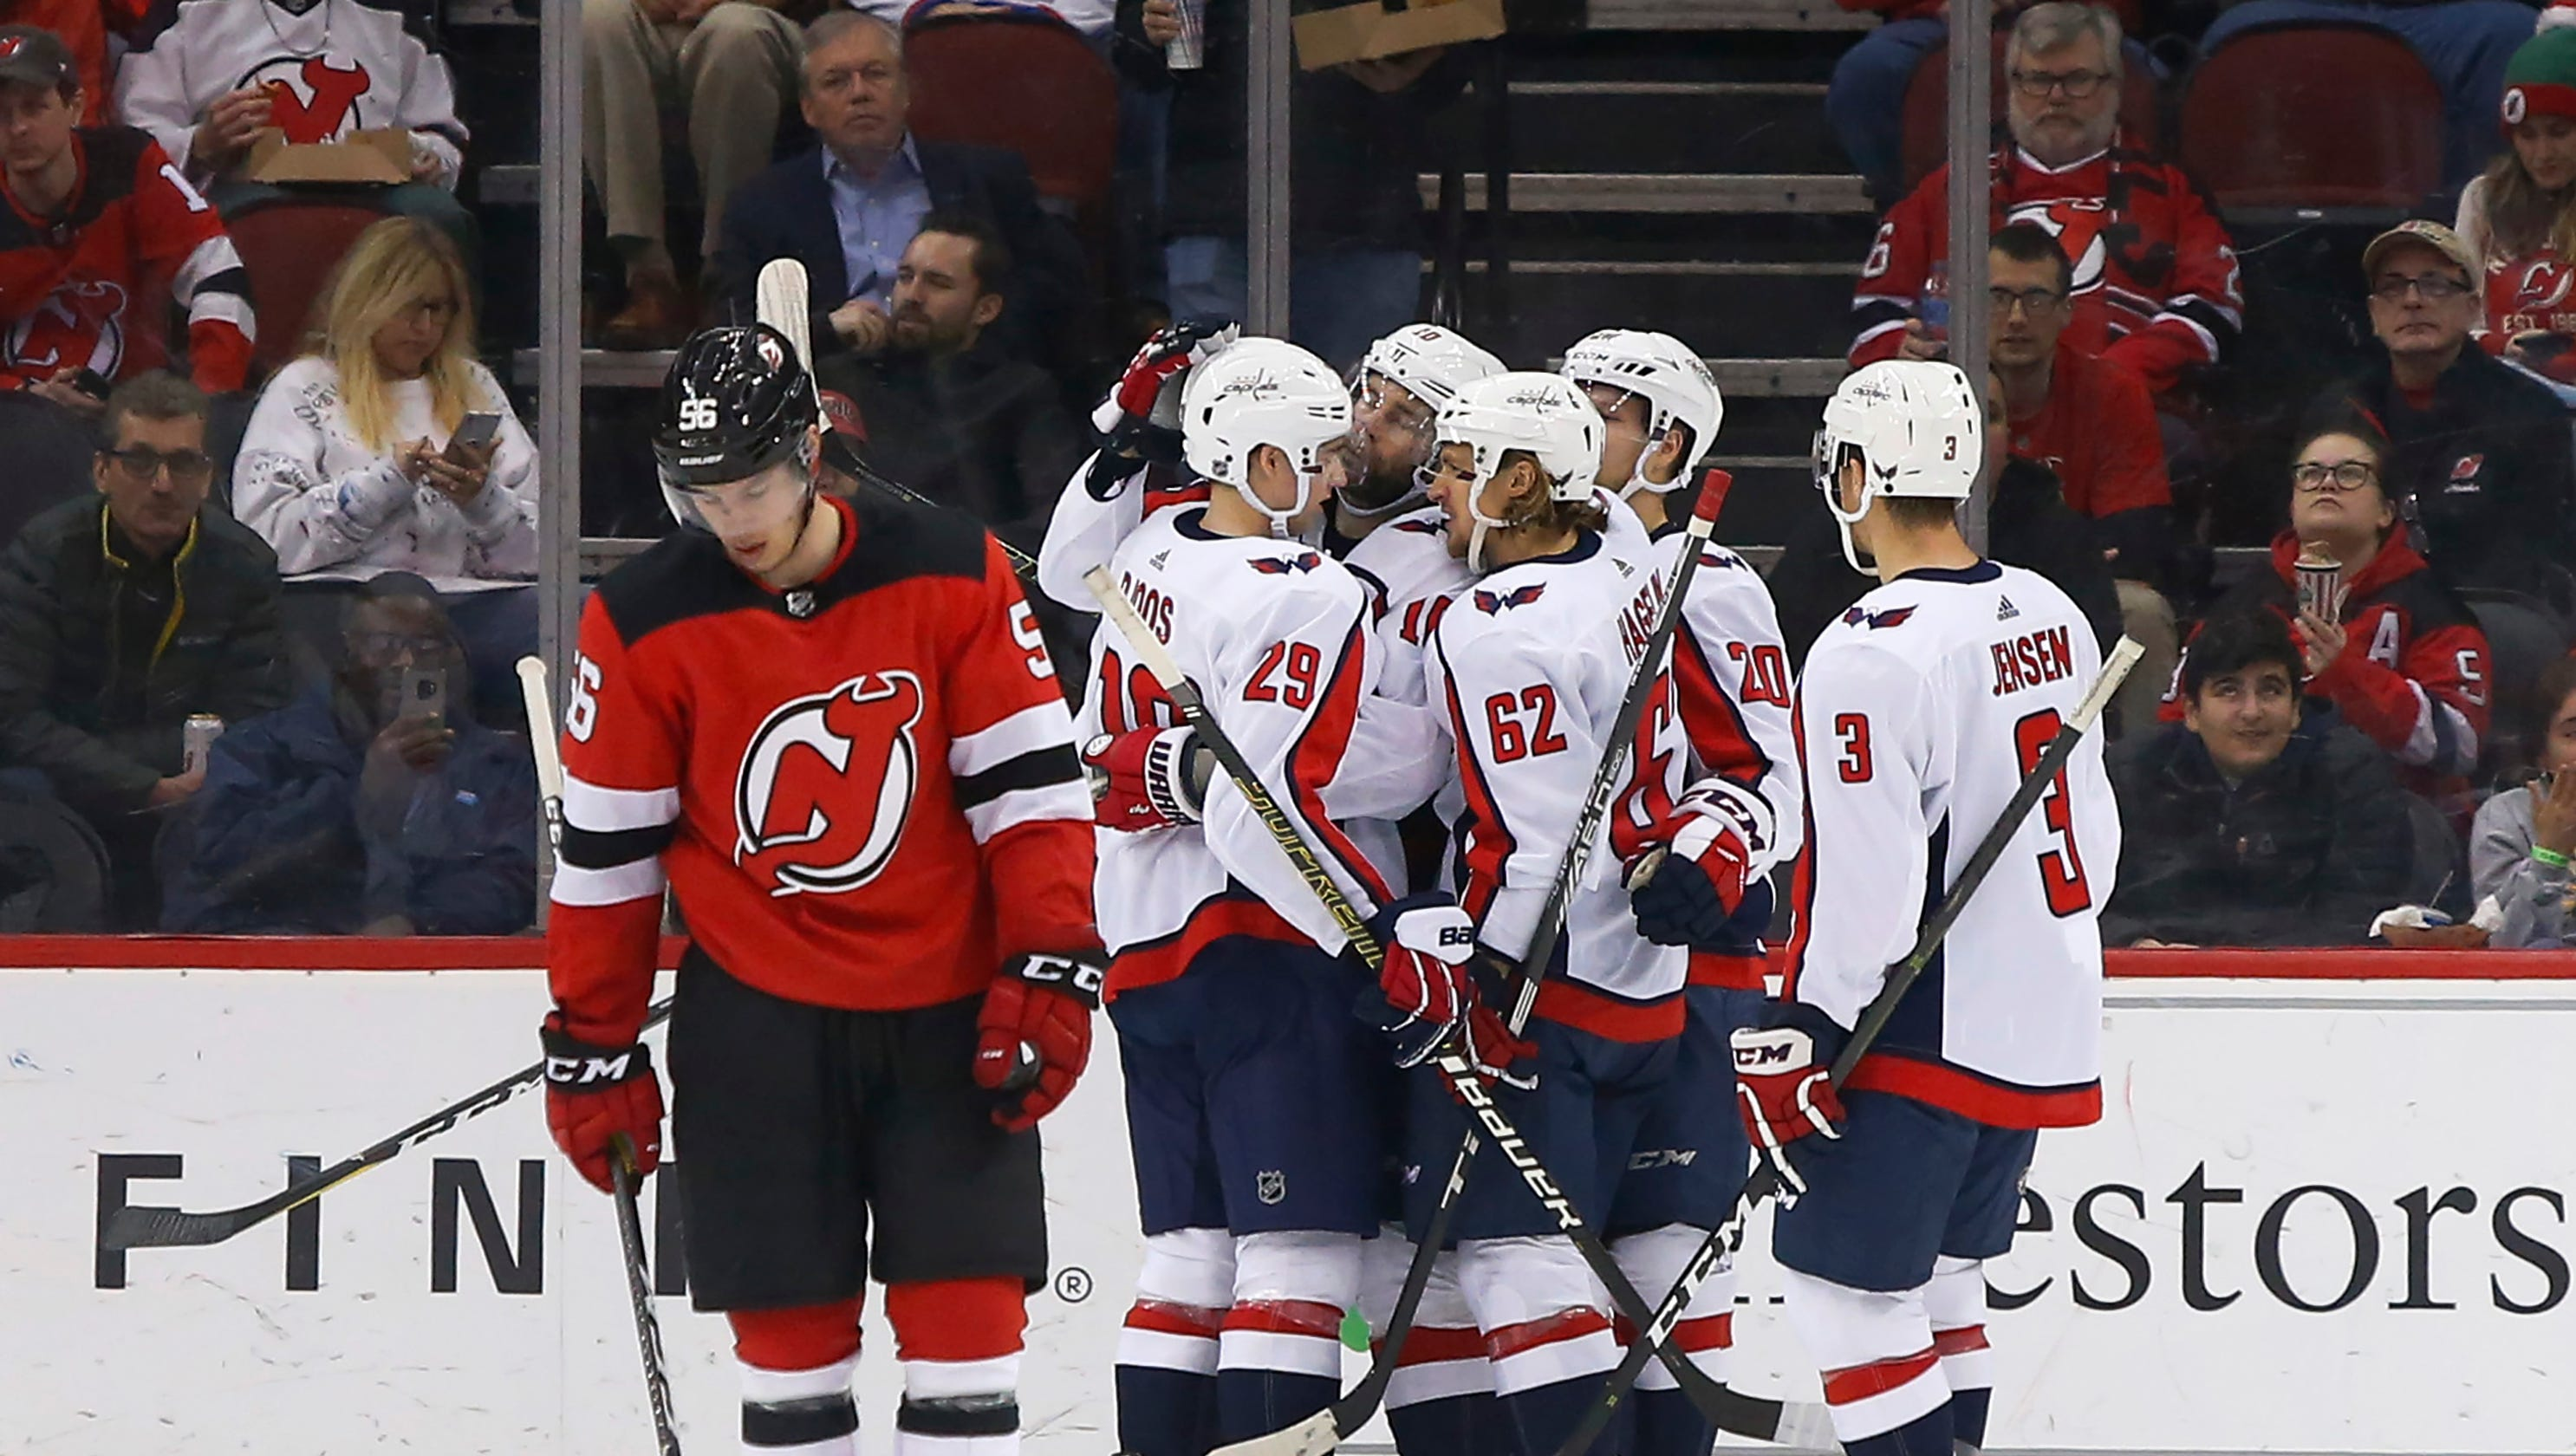 ffb9bb802 NJ Devils  second-period blowup costly in loss to Capitals